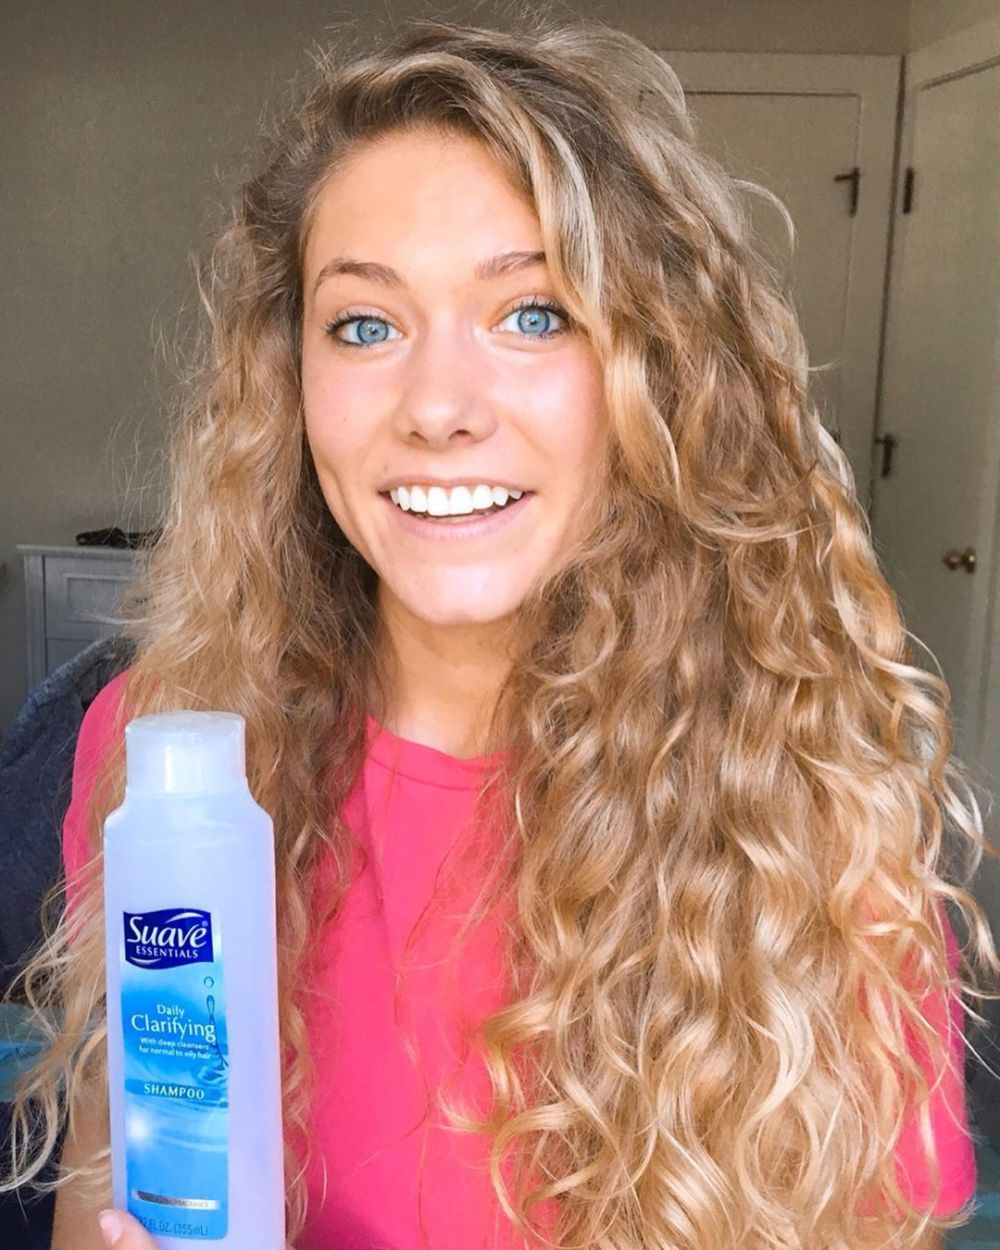 My Modified Curly Girl Method for Wavy Hair in 12 Simple